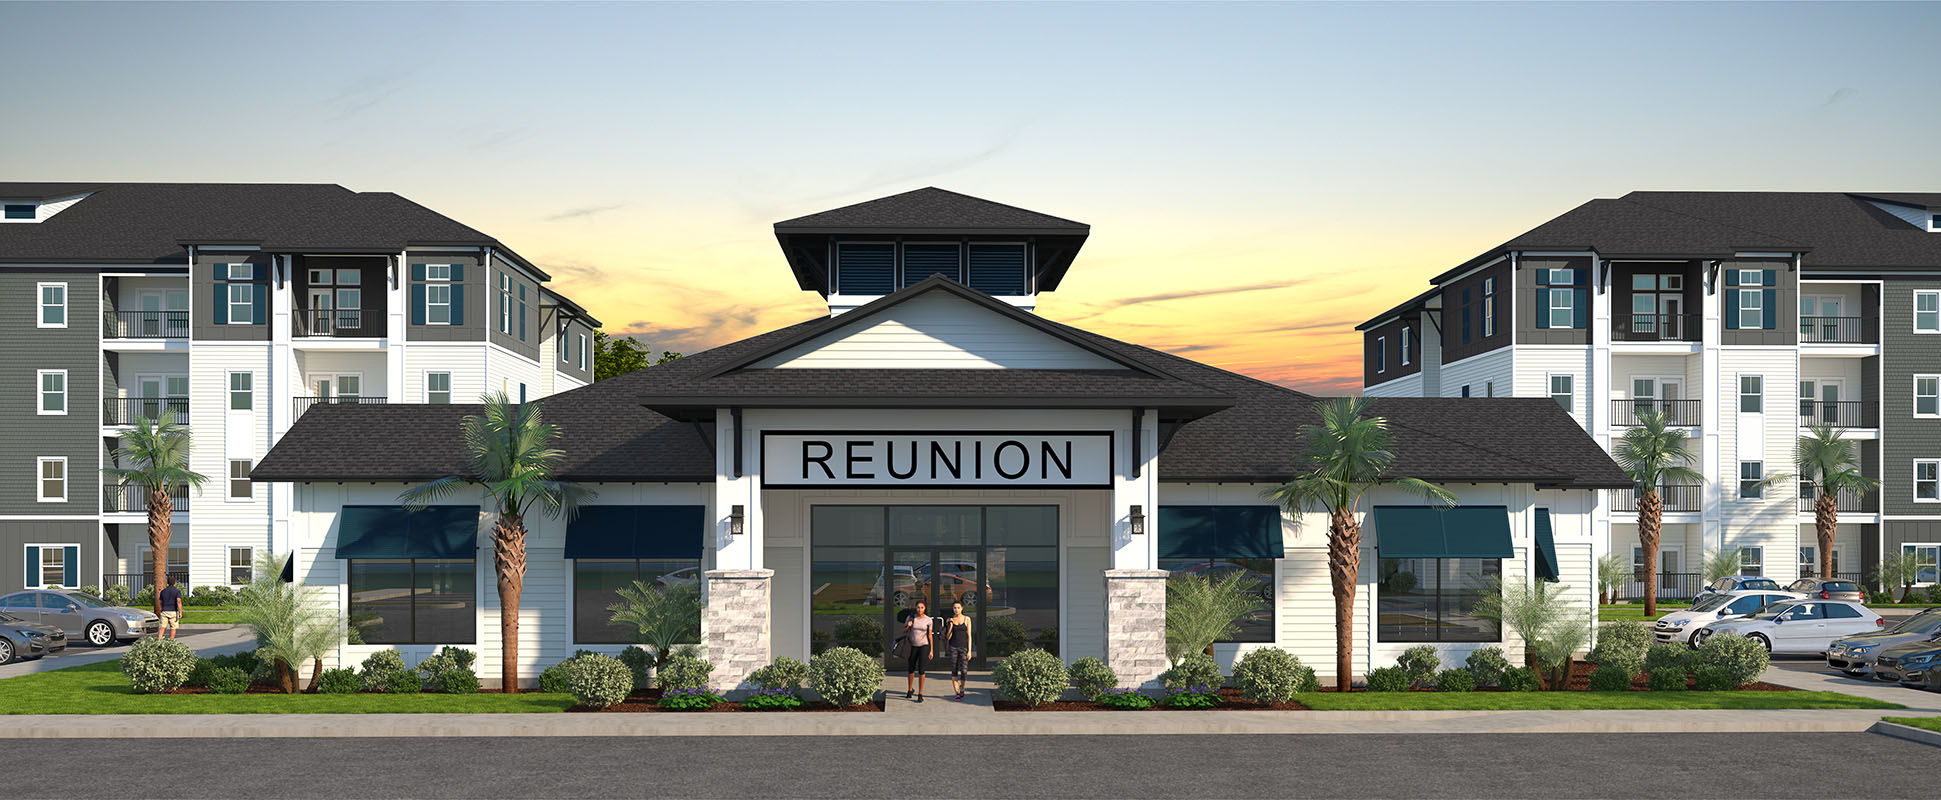 architect's rendering of Reunion apartments in Davenport Florida